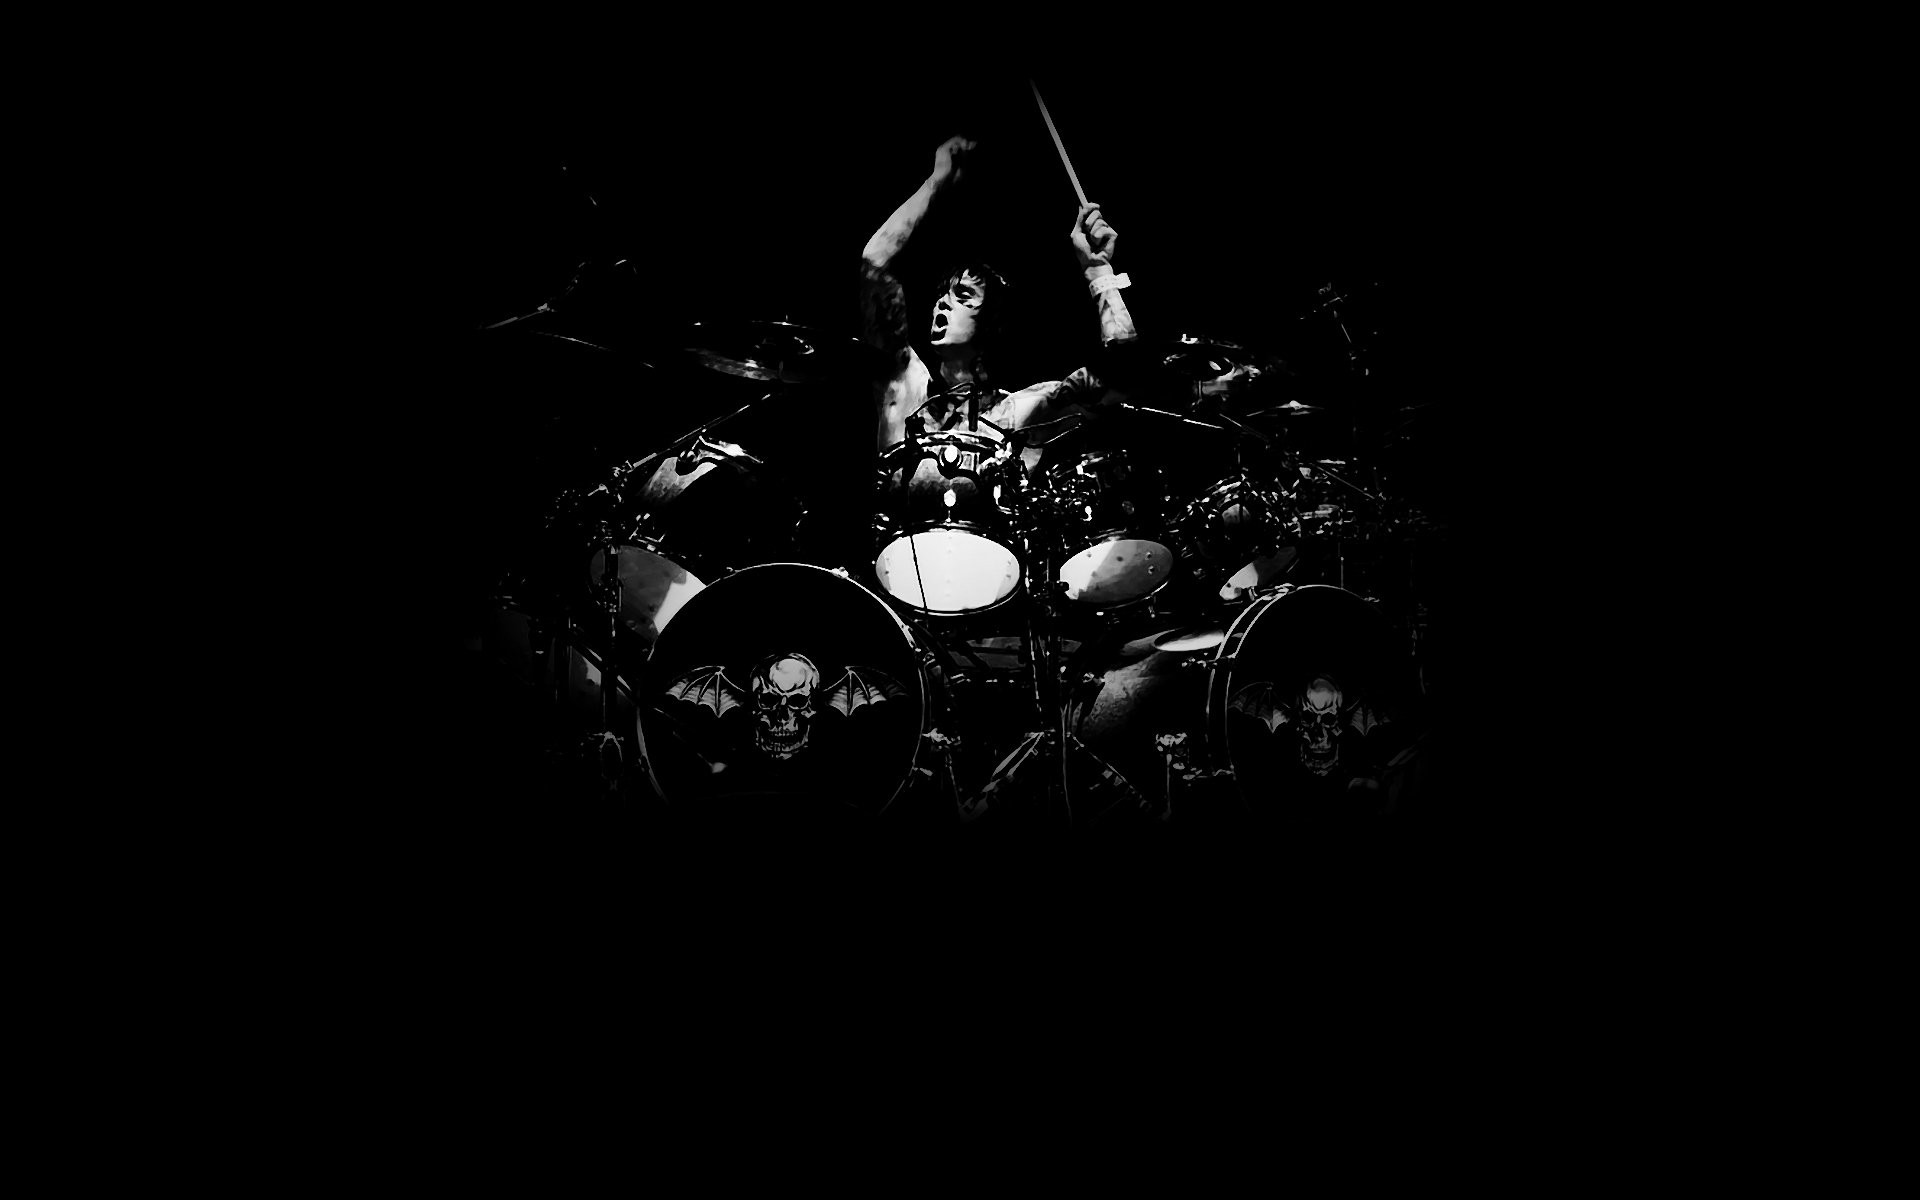 The Rev Wallpaper 64 images 1920x1200